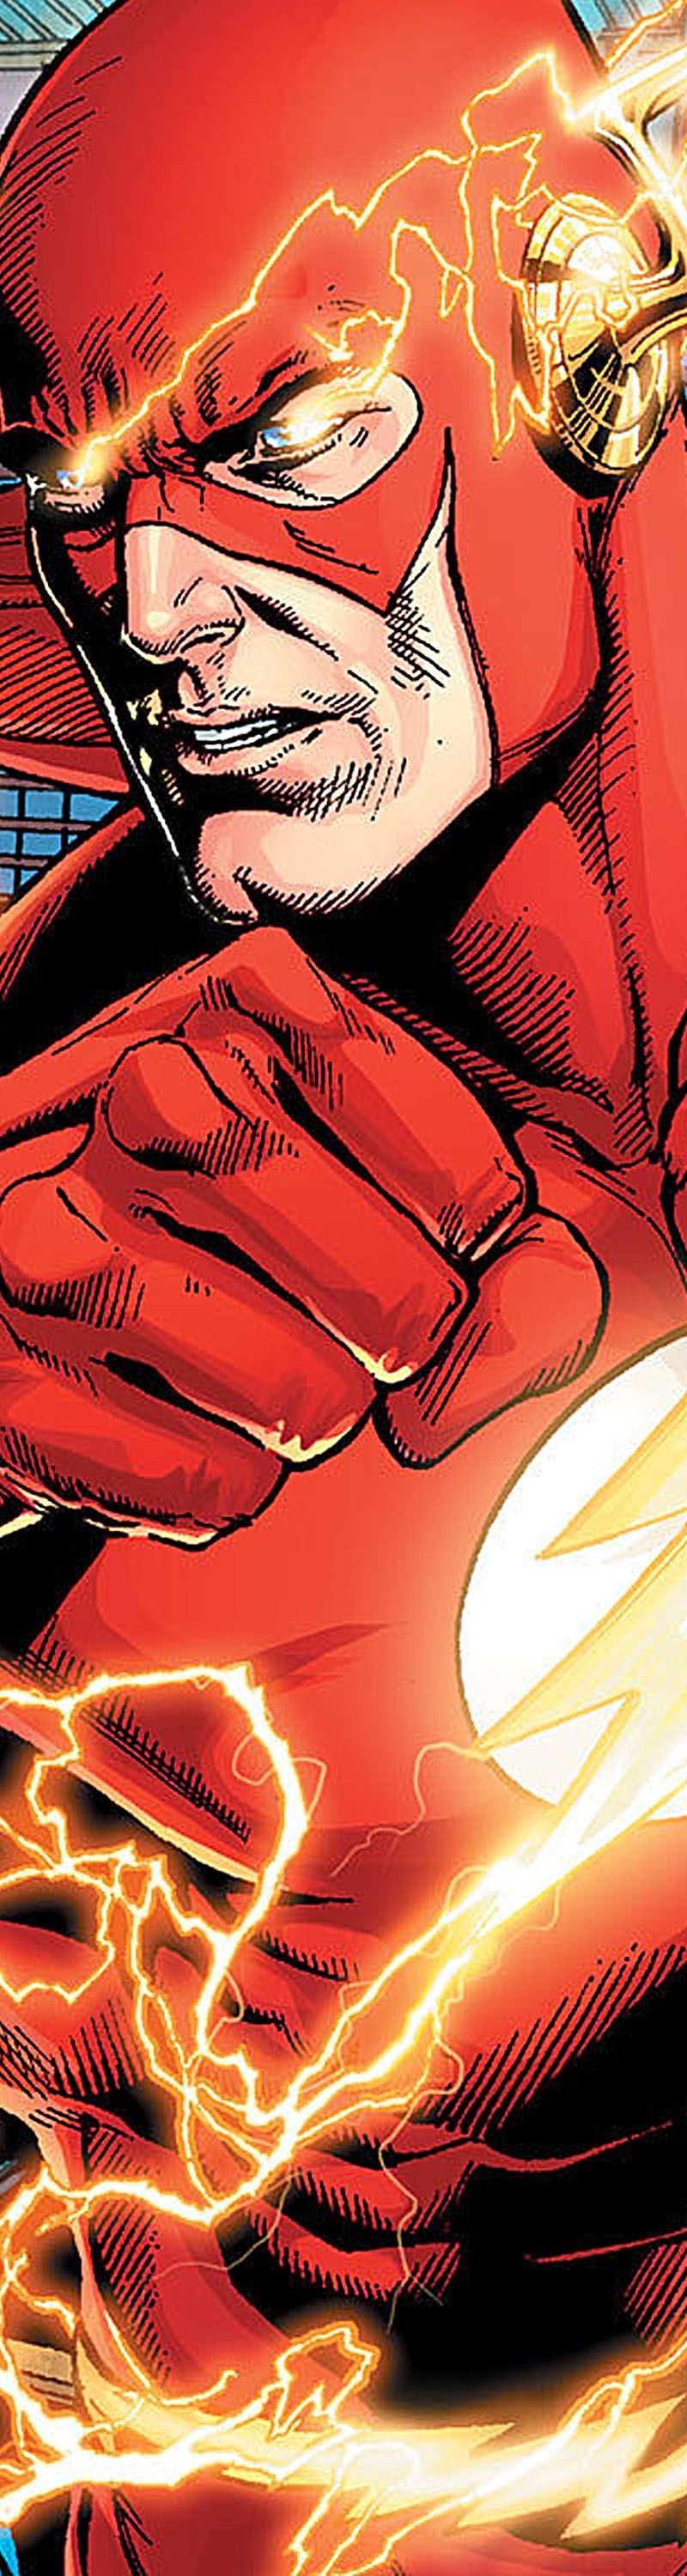 The Flash - Barry Allen Does the right thing